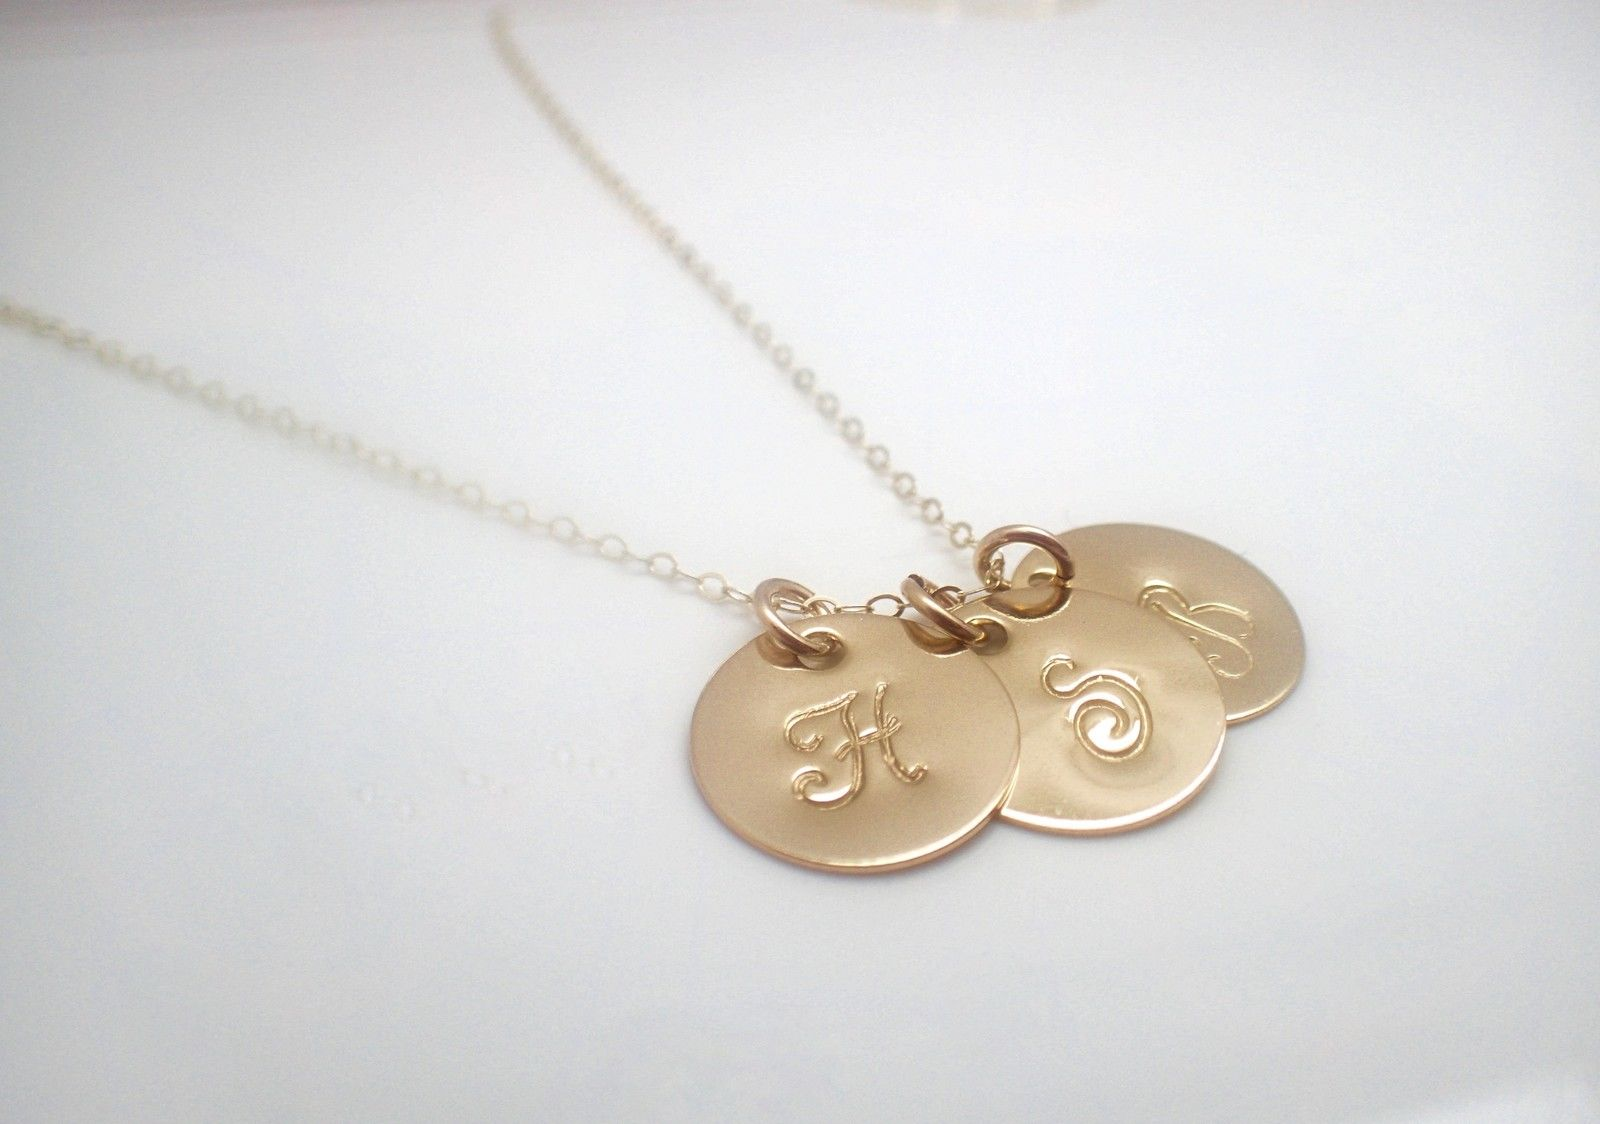 14k gold filled initial discs necklace x3 missy name necklace 14k gold filled initial discs necklace x3 aloadofball Choice Image